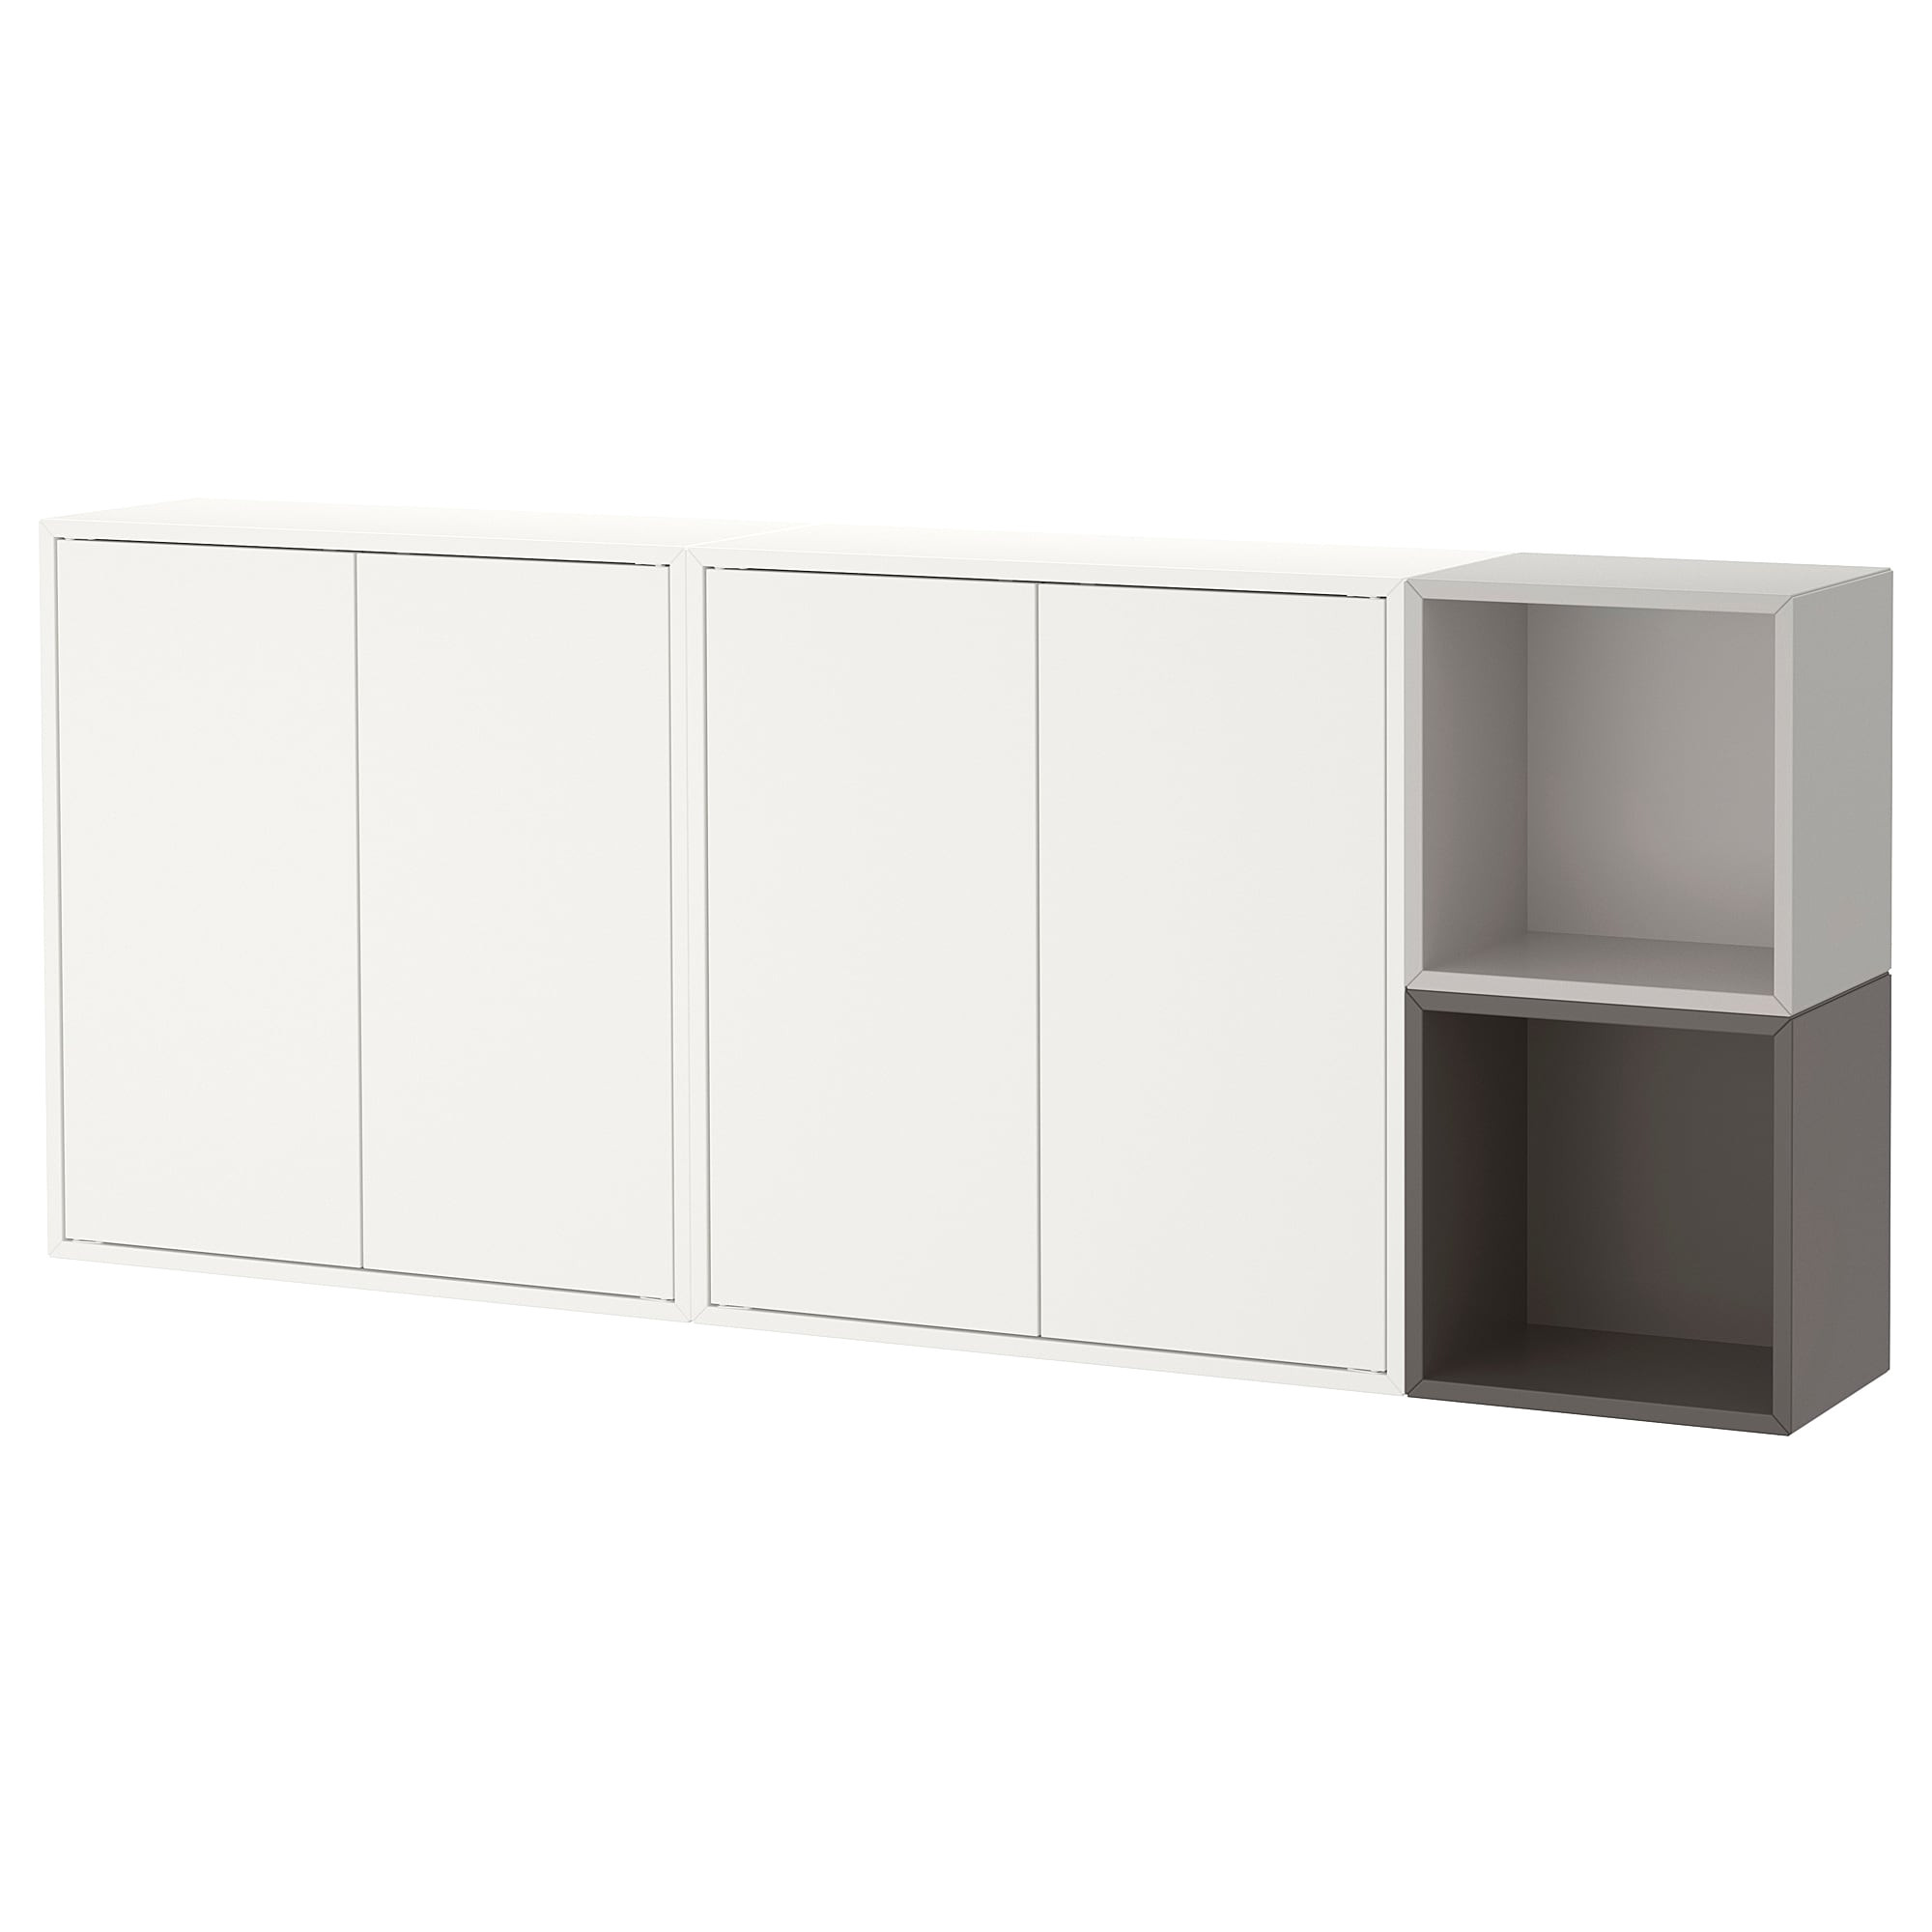 ikea eket wall mounted cabinet combination zoom in